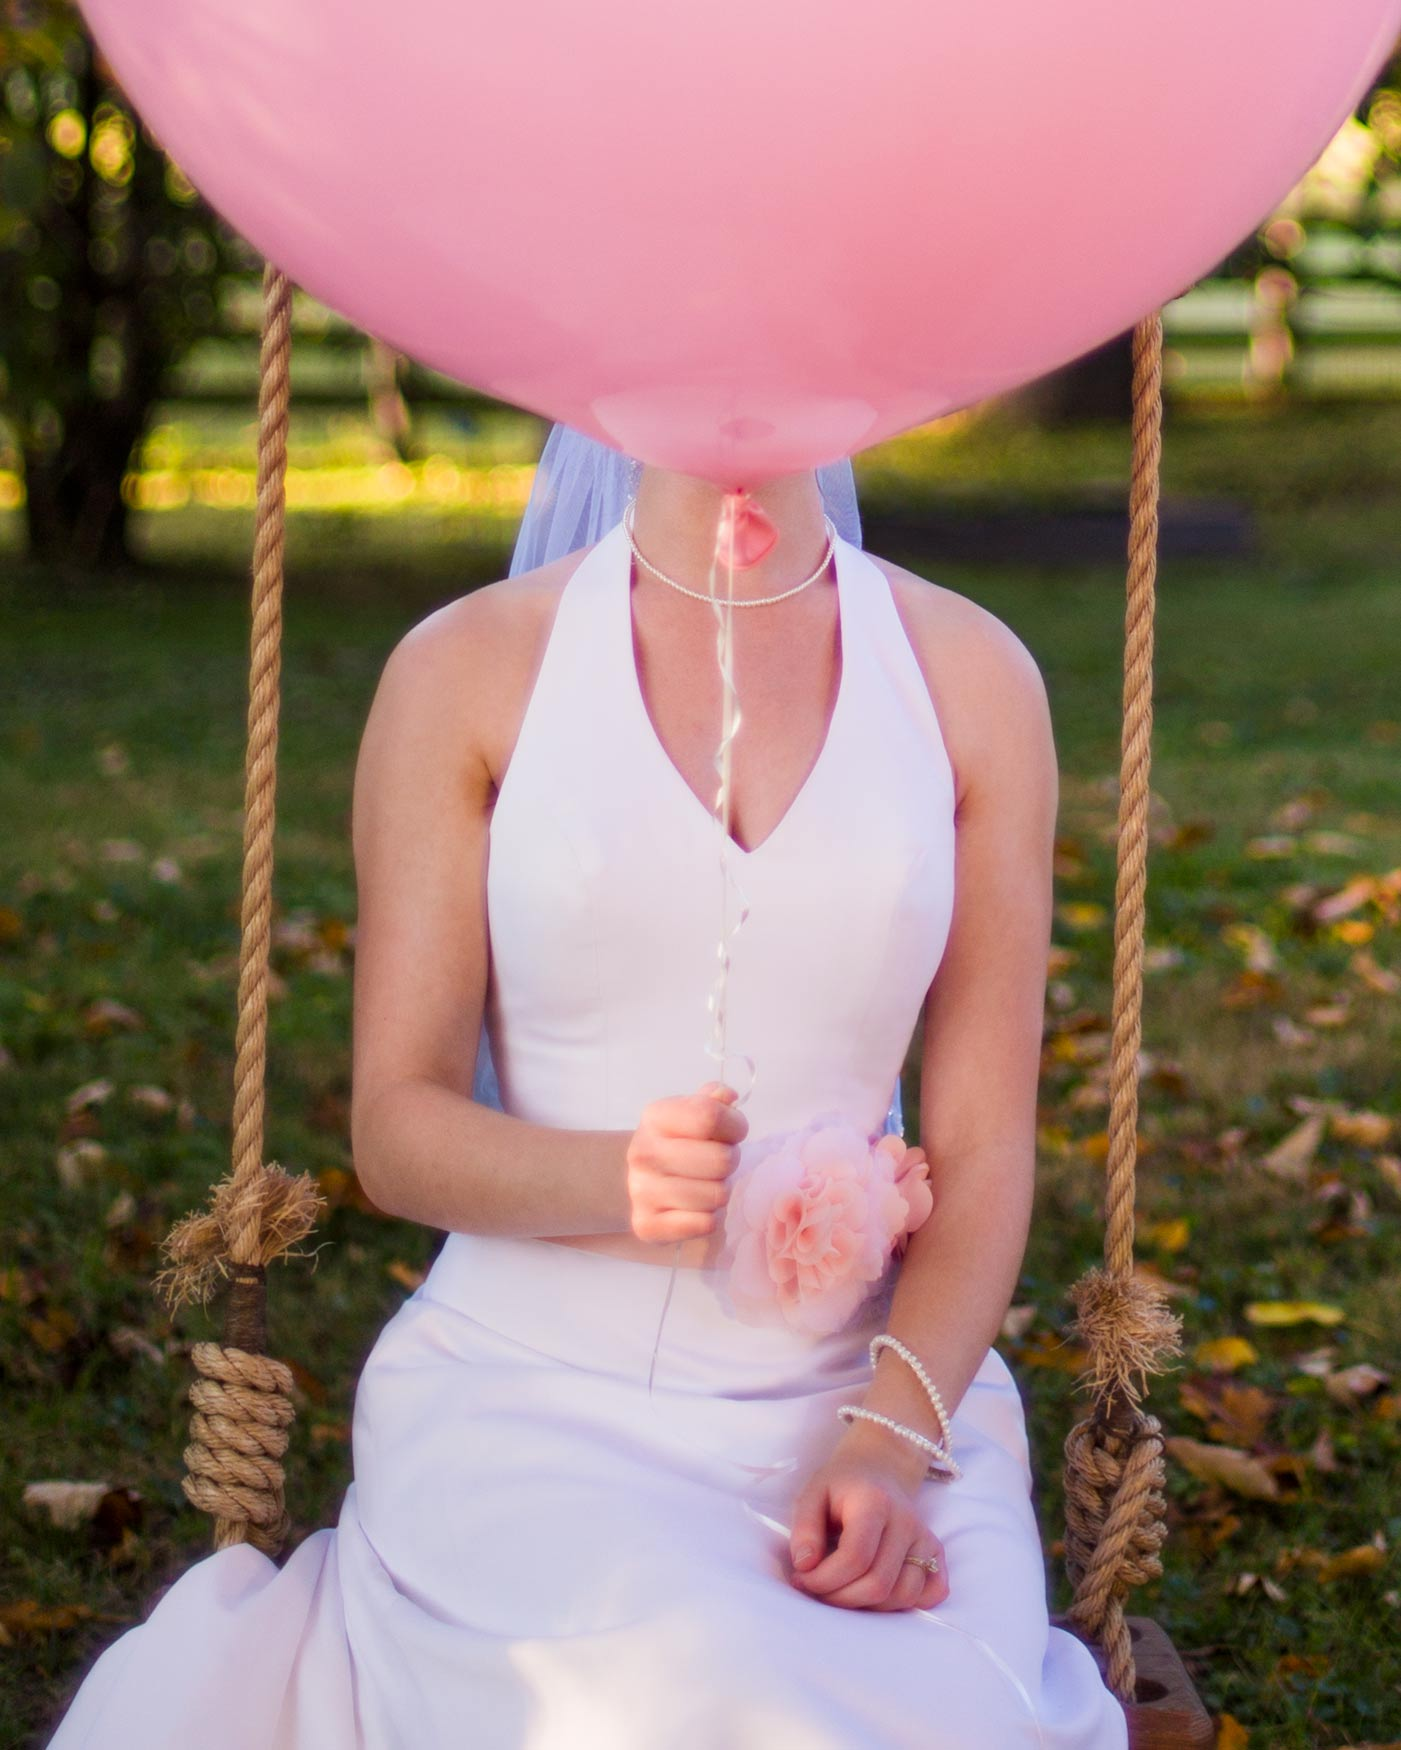 Balloon_Bride_Swing